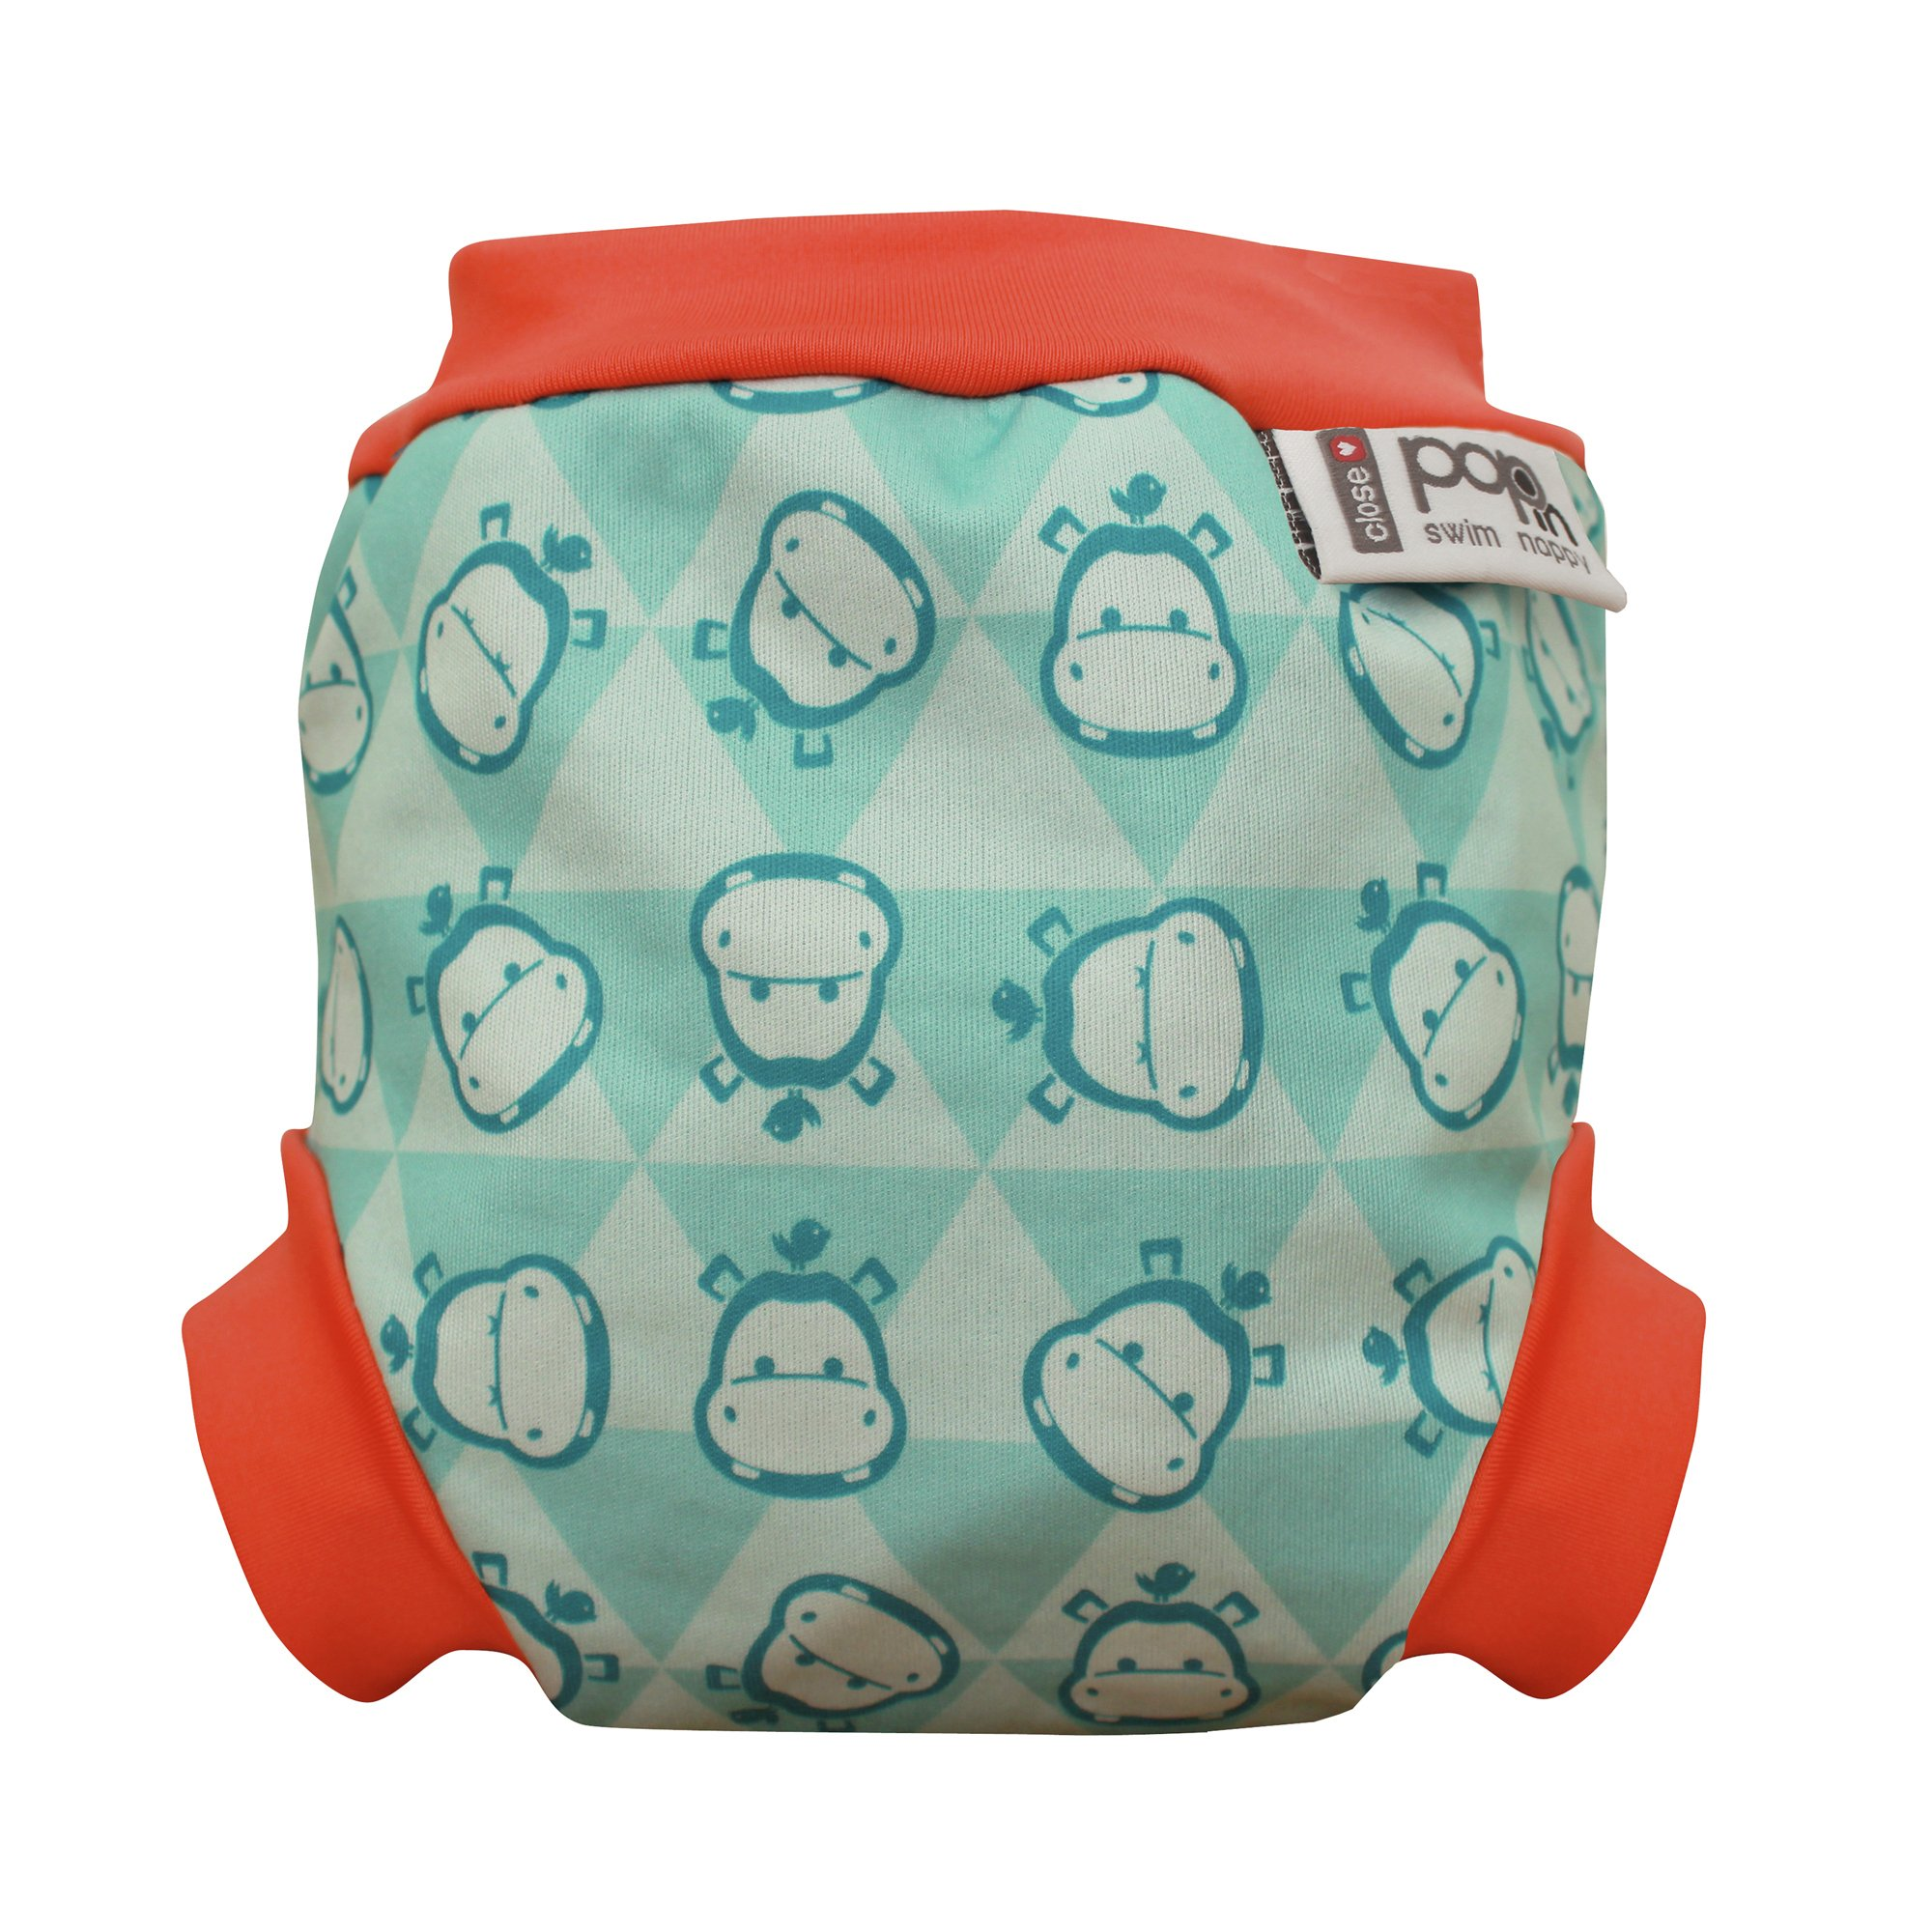 Image of Pop In Hippo Swim Nappy - Large